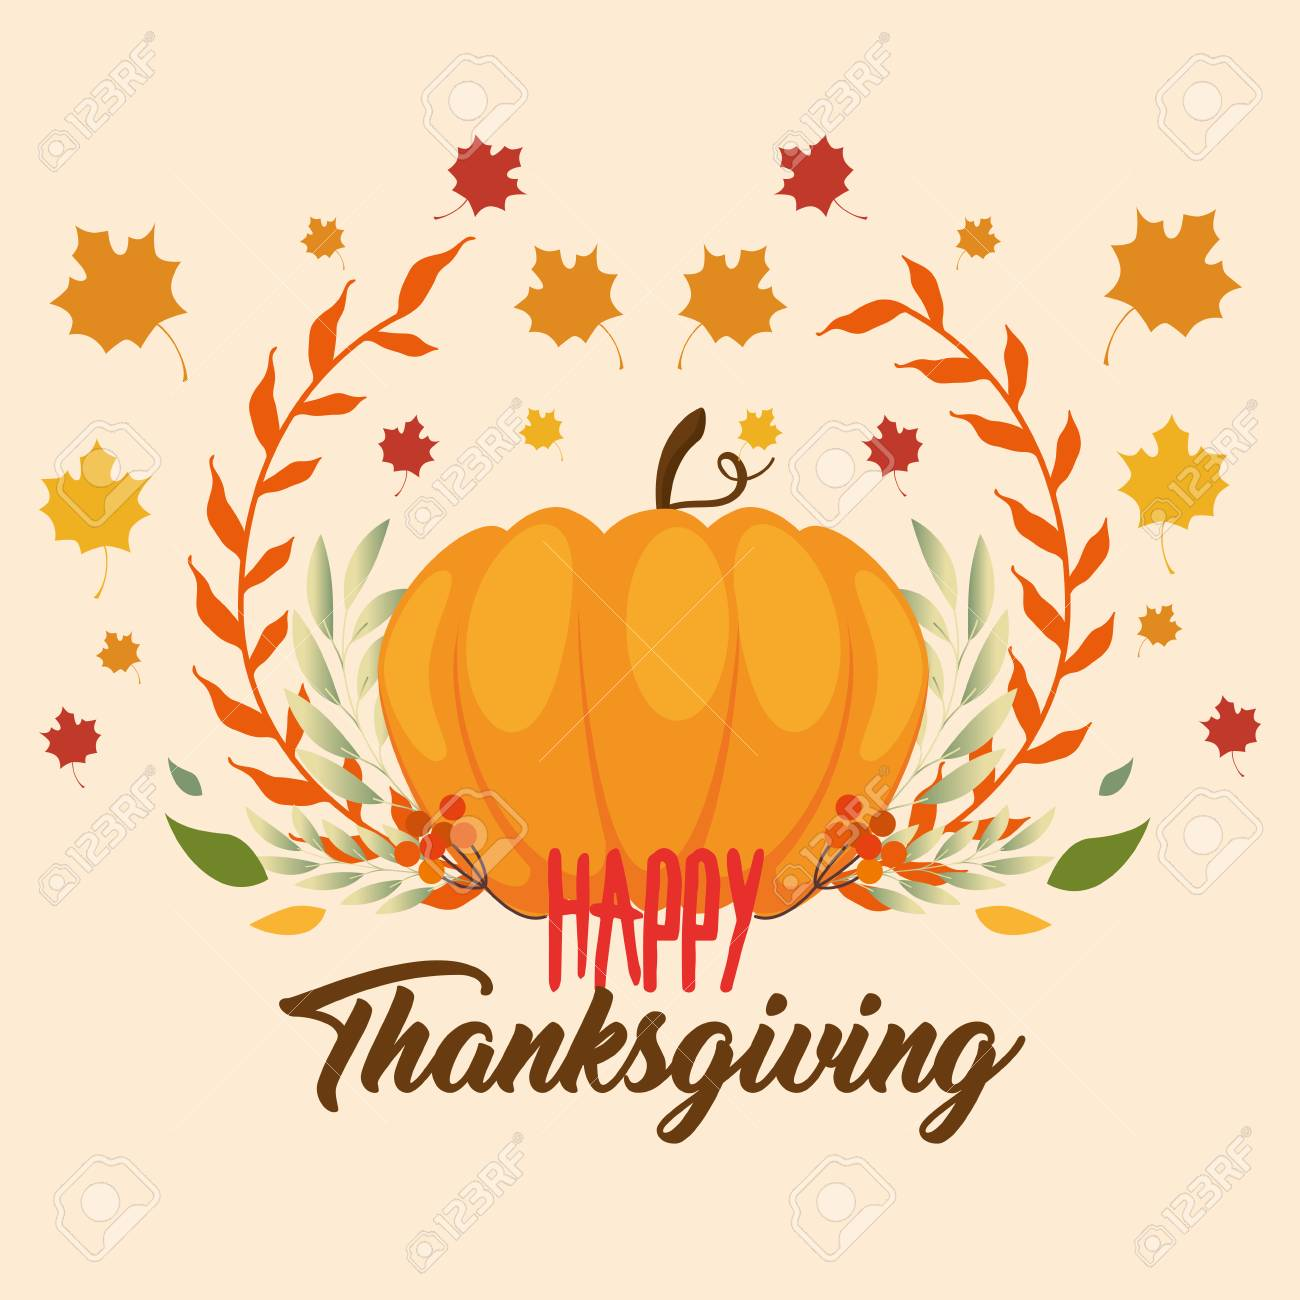 Happy thanksgiving day greeting card vector illustration graphic happy thanksgiving day greeting card vector illustration graphic design stock vector 88392918 m4hsunfo